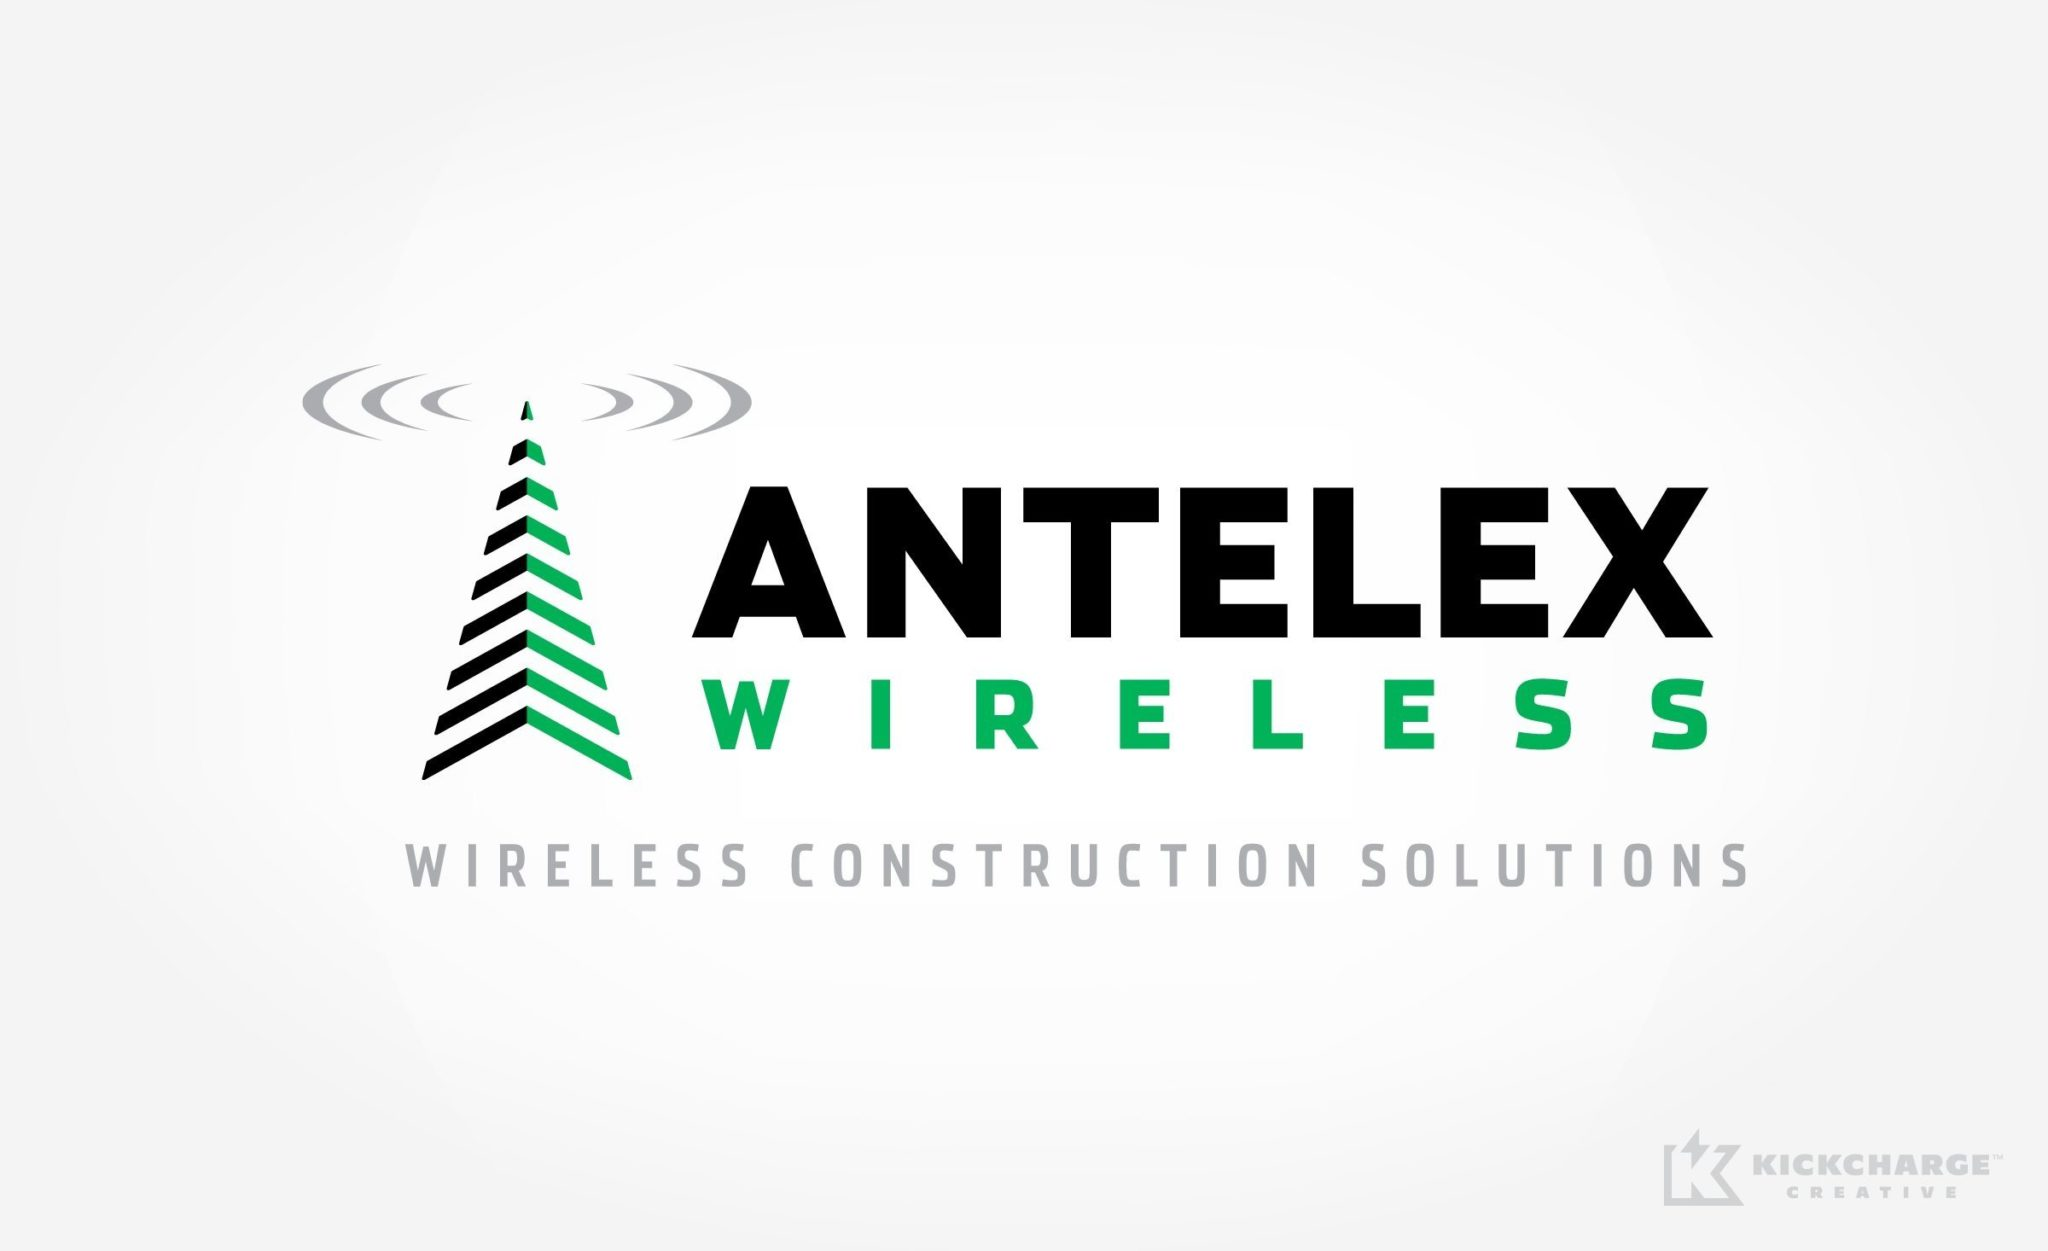 Antelex Wireless